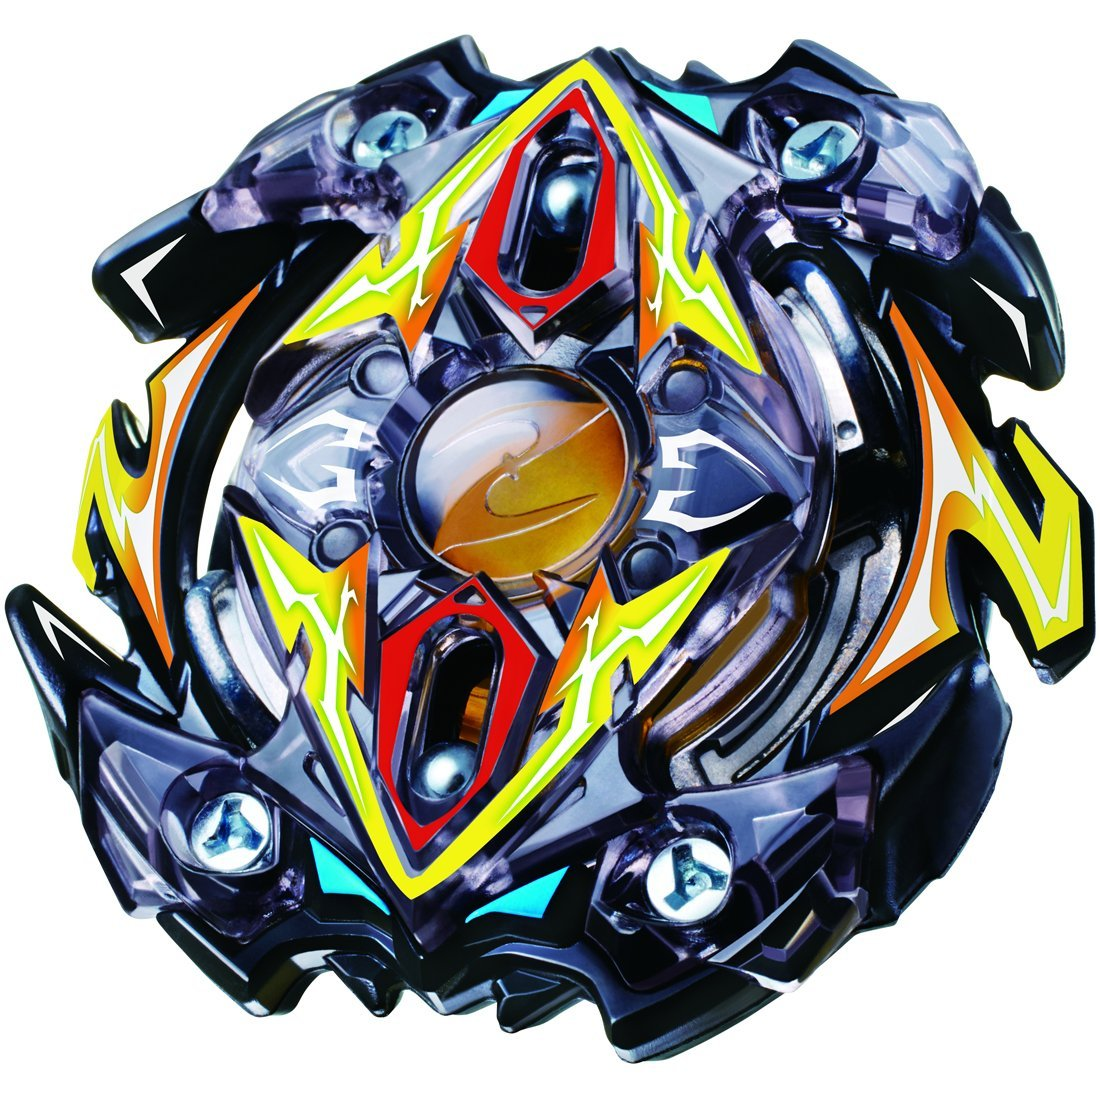 Zeutron z2 infinity weight beyblade wiki fandom powered by wikia - Toupi blade blade ...